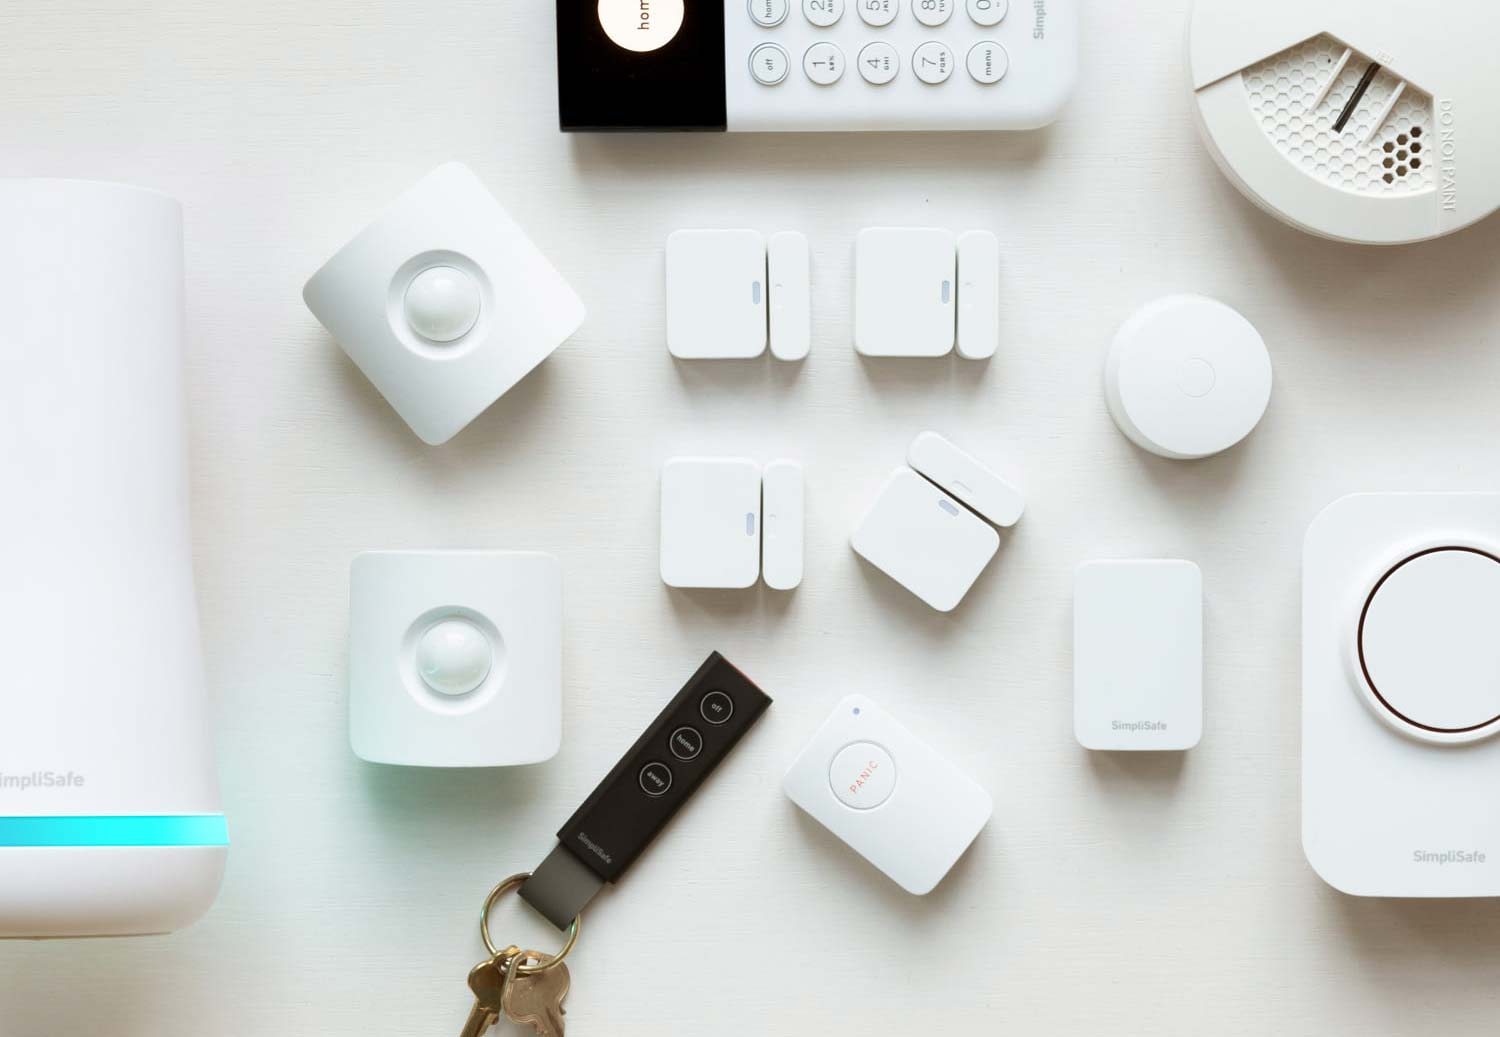 Best Diy Home Security Systems In 2020